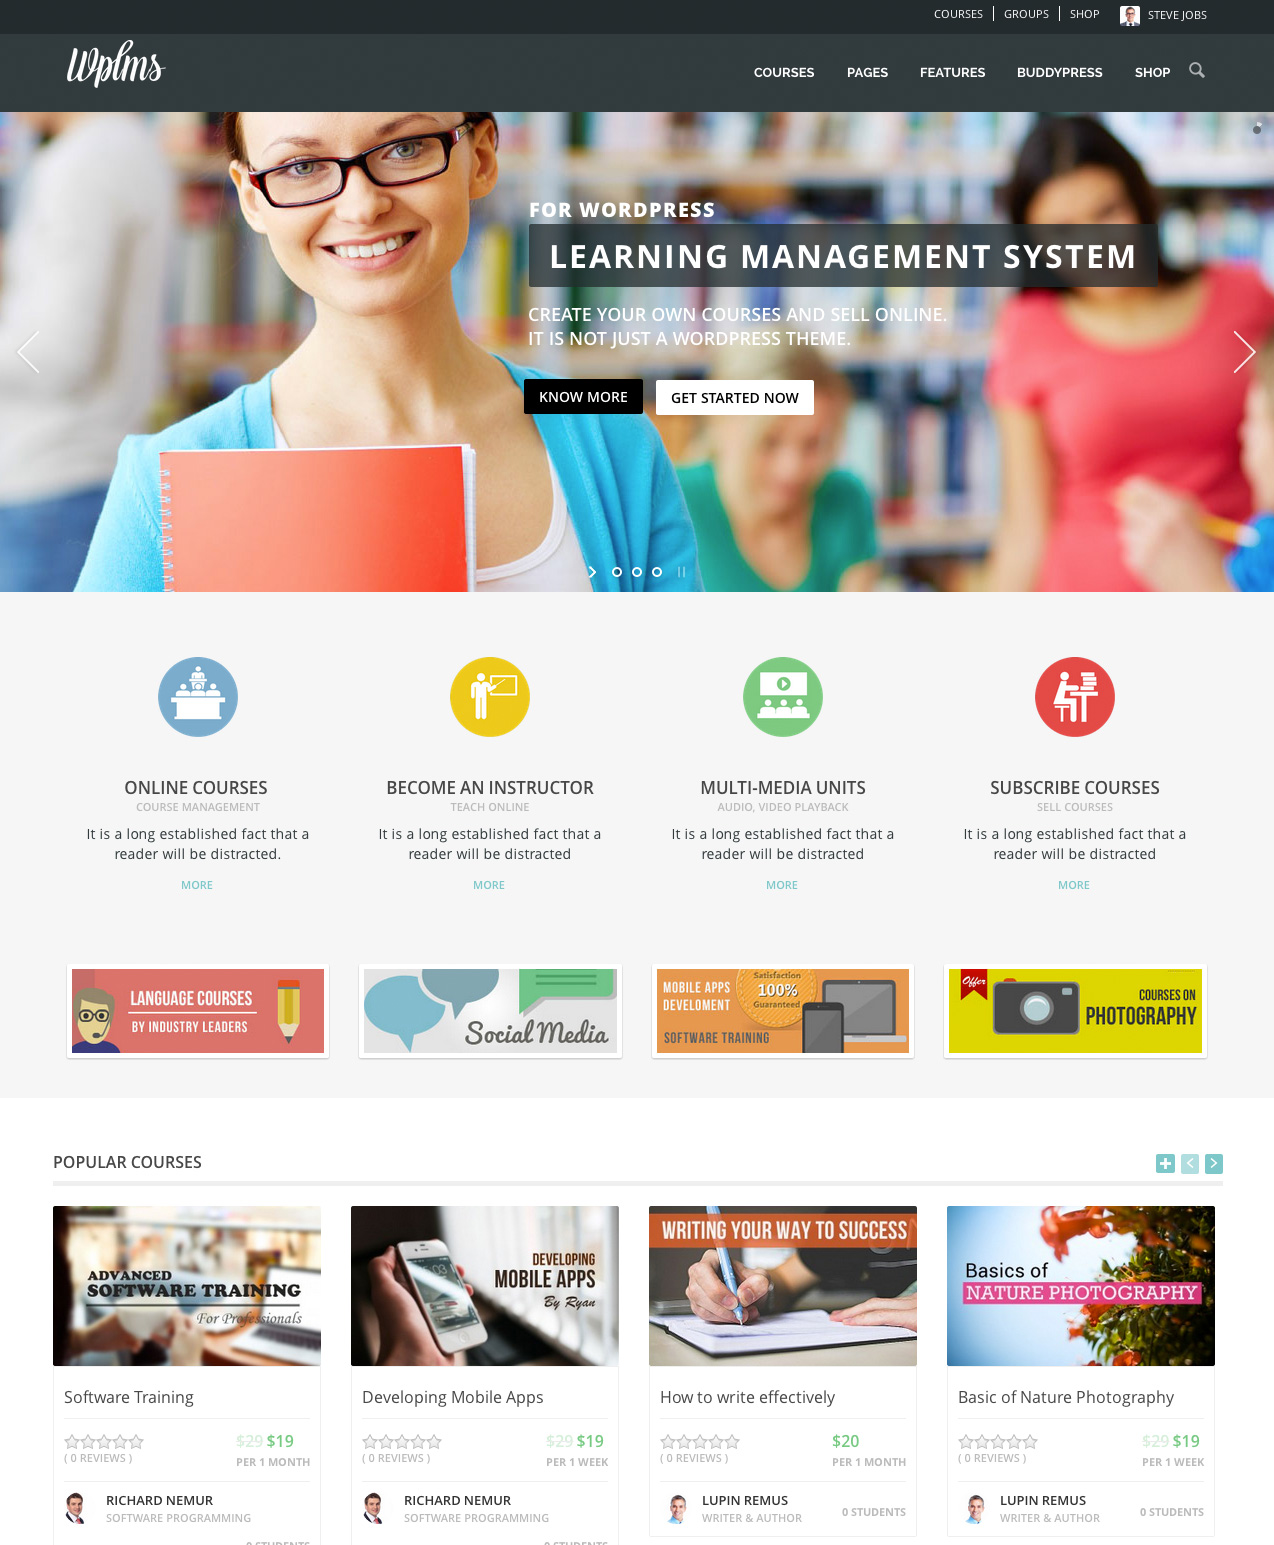 WPLMS 2.7.3 LMS Learning Management System – WordPress Theme s1